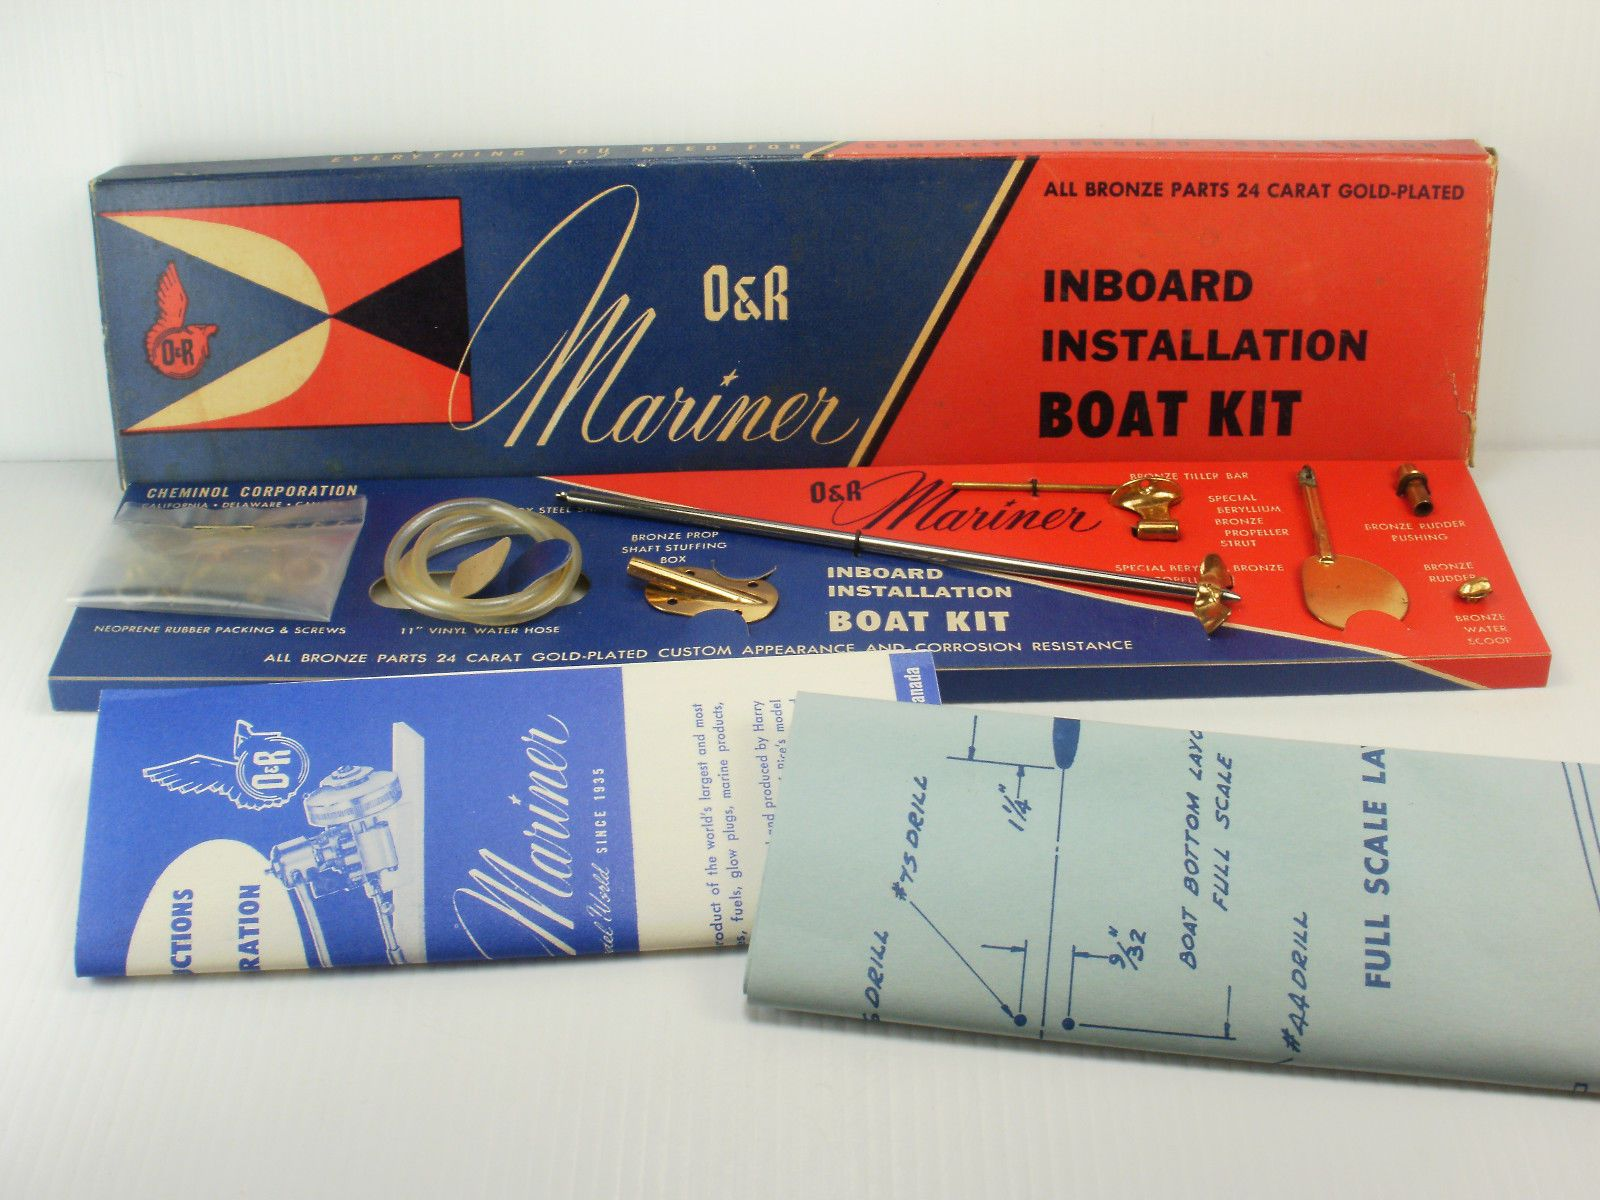 New In Box Vintage Or Mariner Inboard Marine Engine Installation How To Wire Boat Accessories Kit Ebay